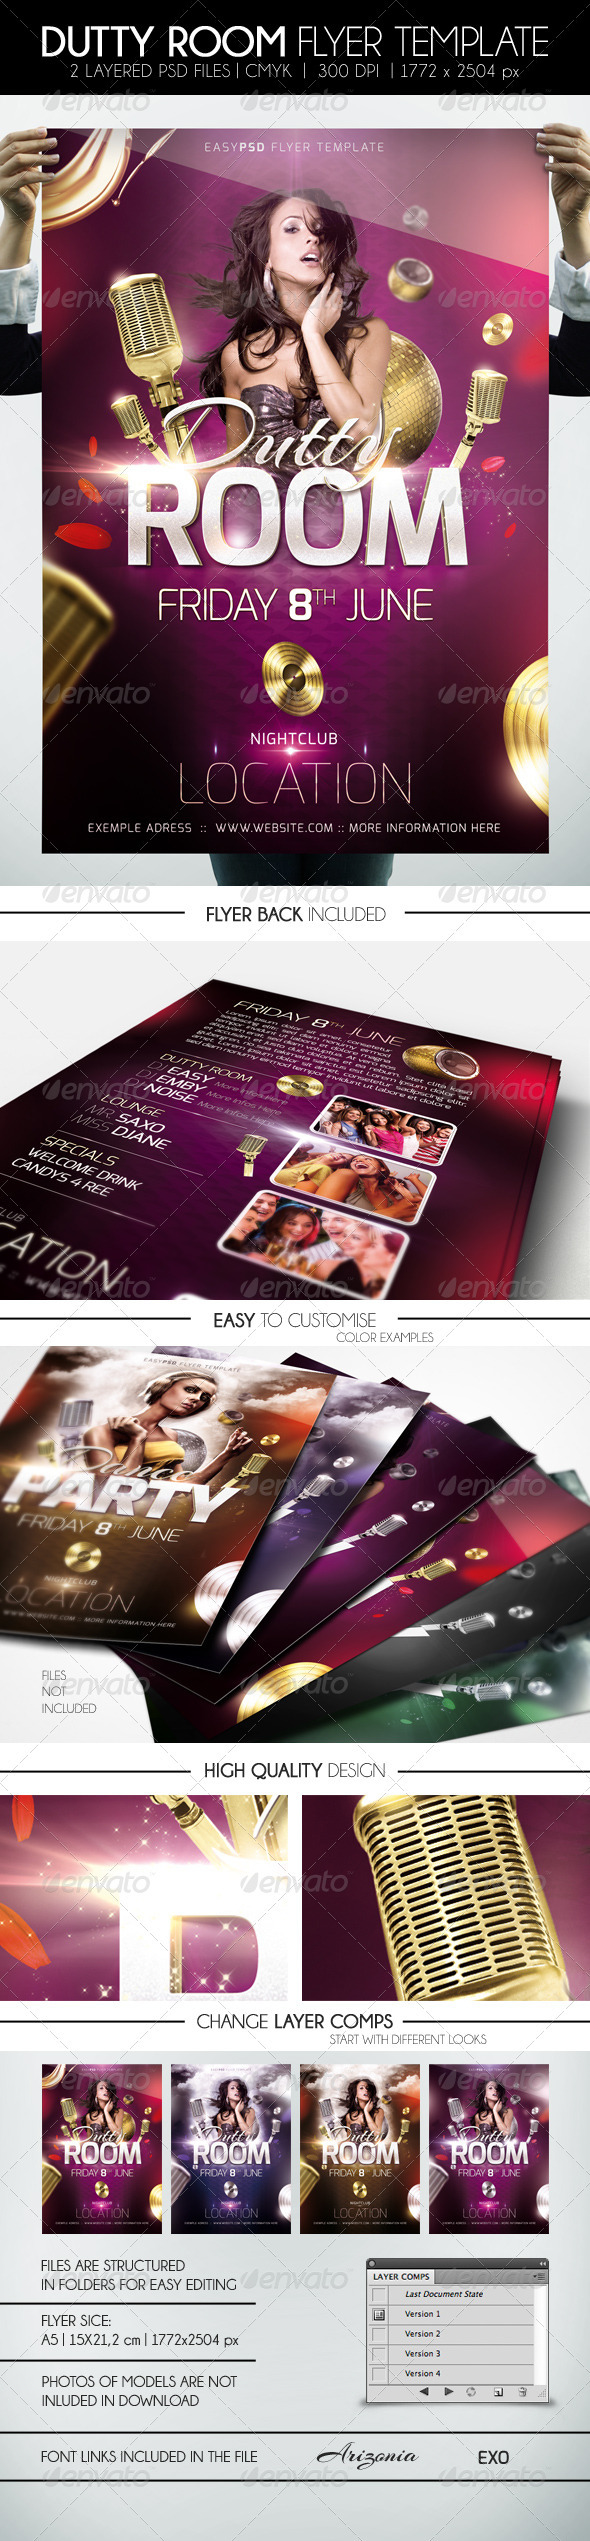 GraphicRiver Dutty Room Flyer Template 1791433